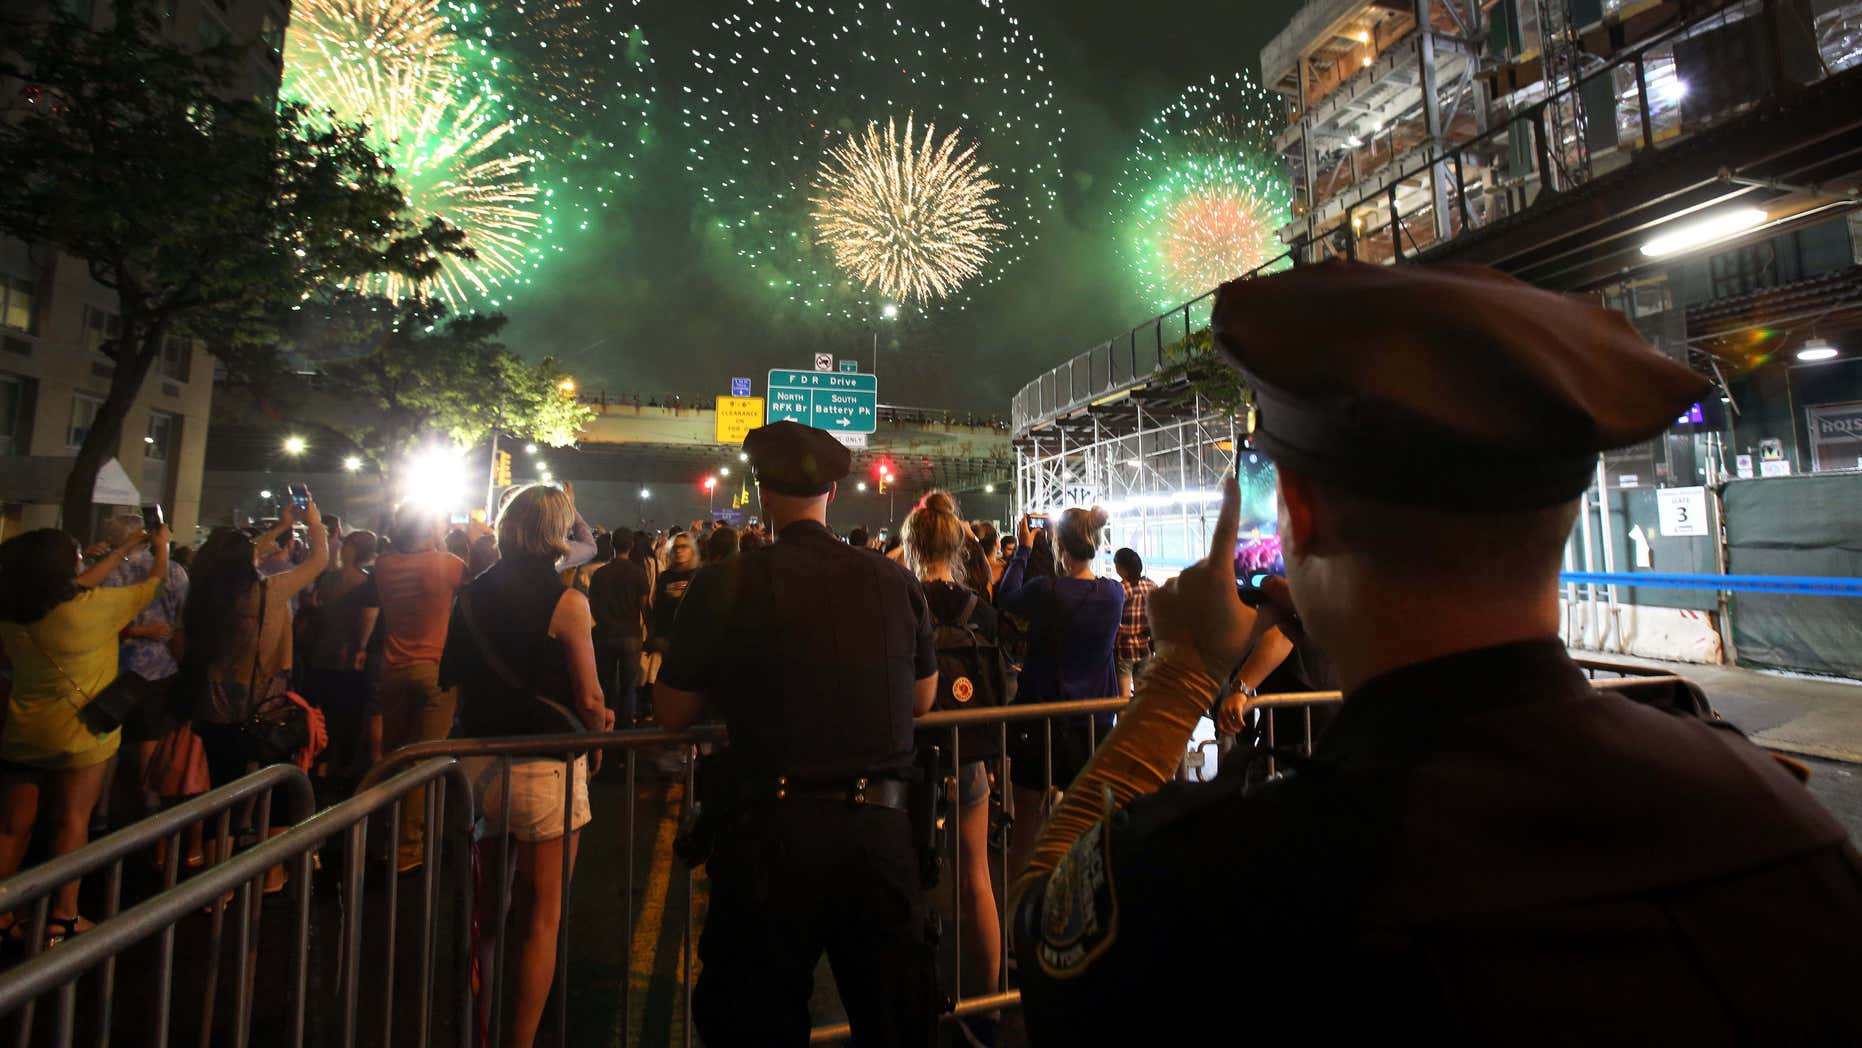 A New York City police officer takes a picture with his phone as he watches over spectators watching the Fourth of July fireworks, Monday, July 4, 2016, along the East River on the FDR Drive in New York.